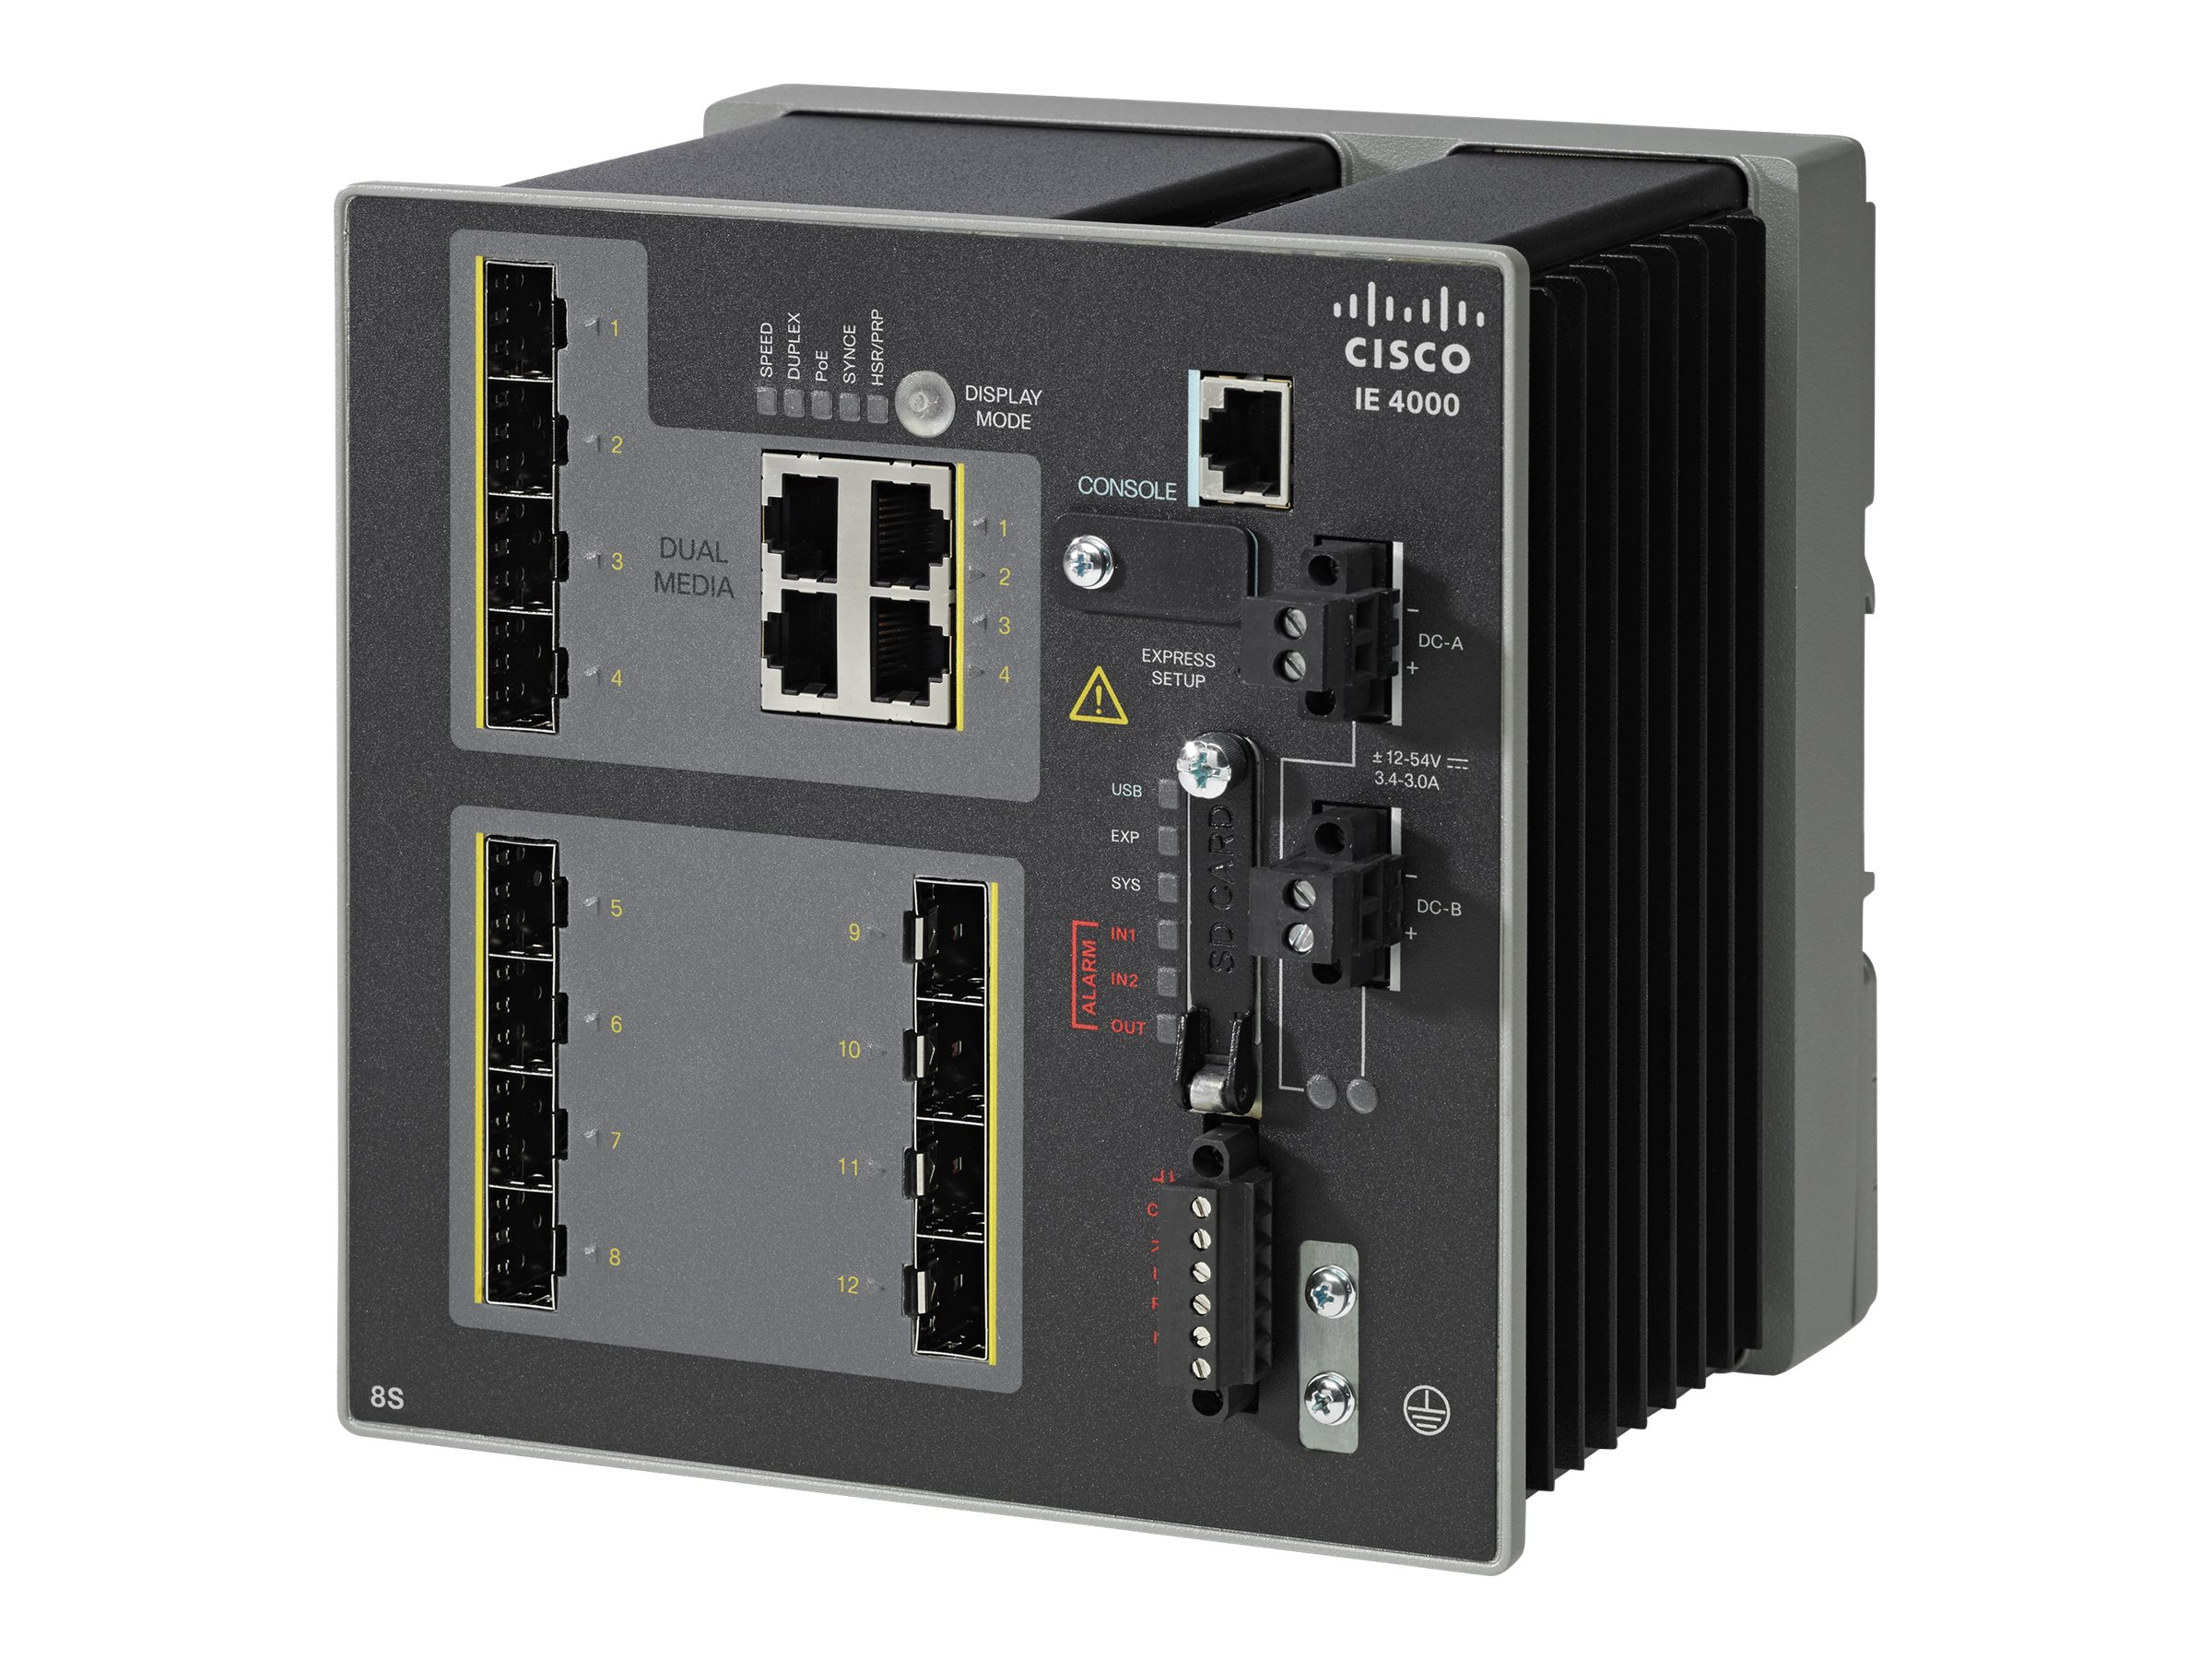 Cisco IE 4000 8X SFP 100M 4X 1G Combo LAN Base Switch, IE-4000-8S4G-E, 23407241, Network Switches